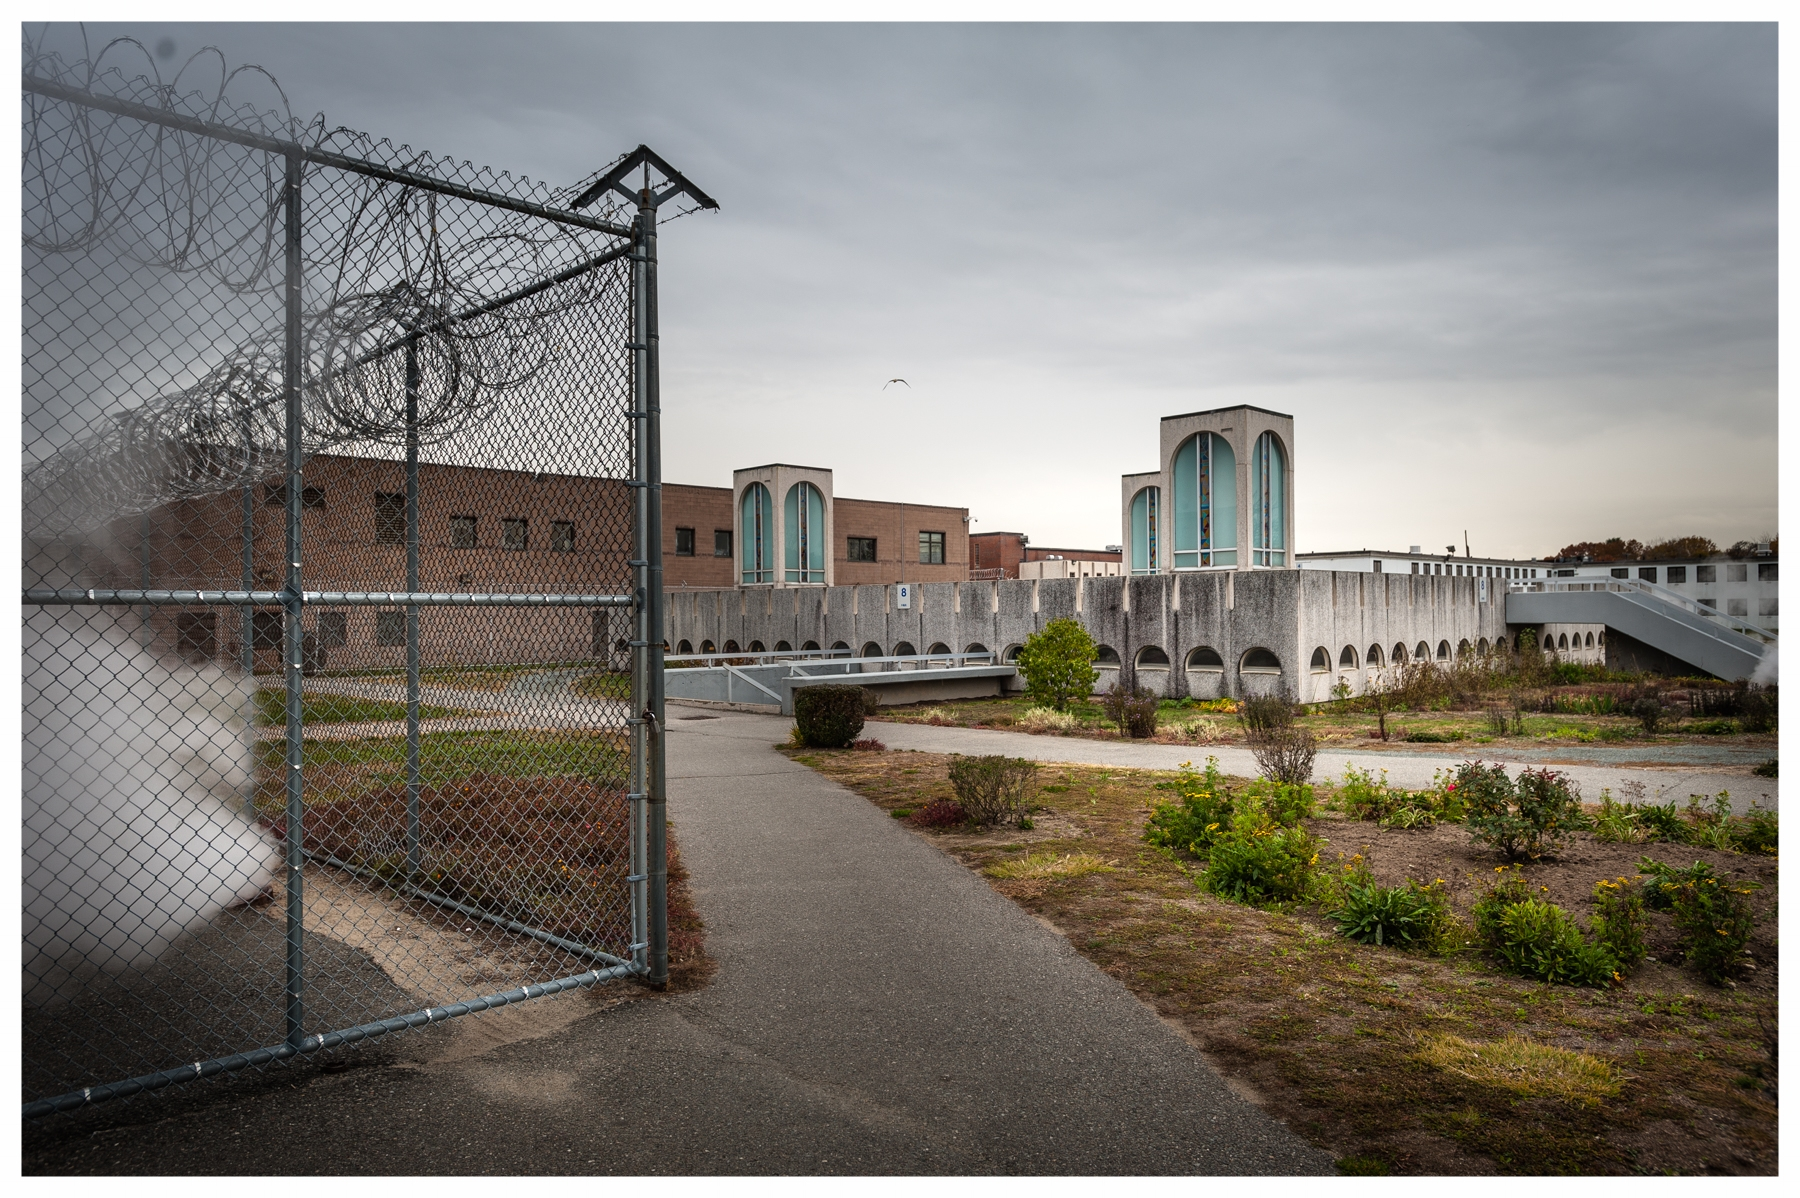 Chapel Complex, Massachusetts Correctional Institution   Concord